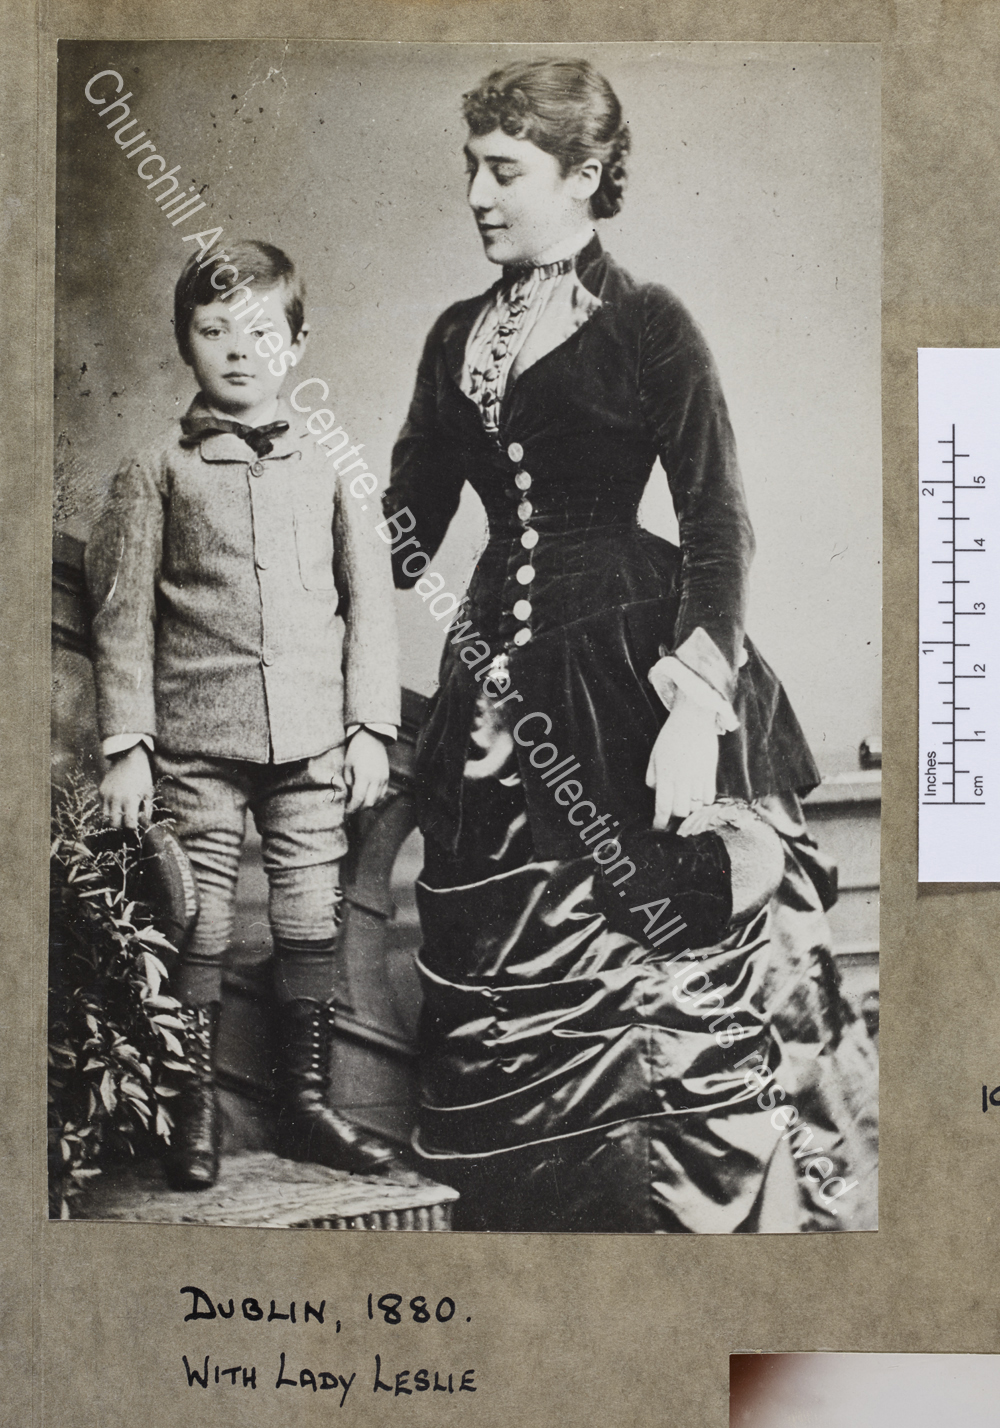 Photograph of WSC as a small boy